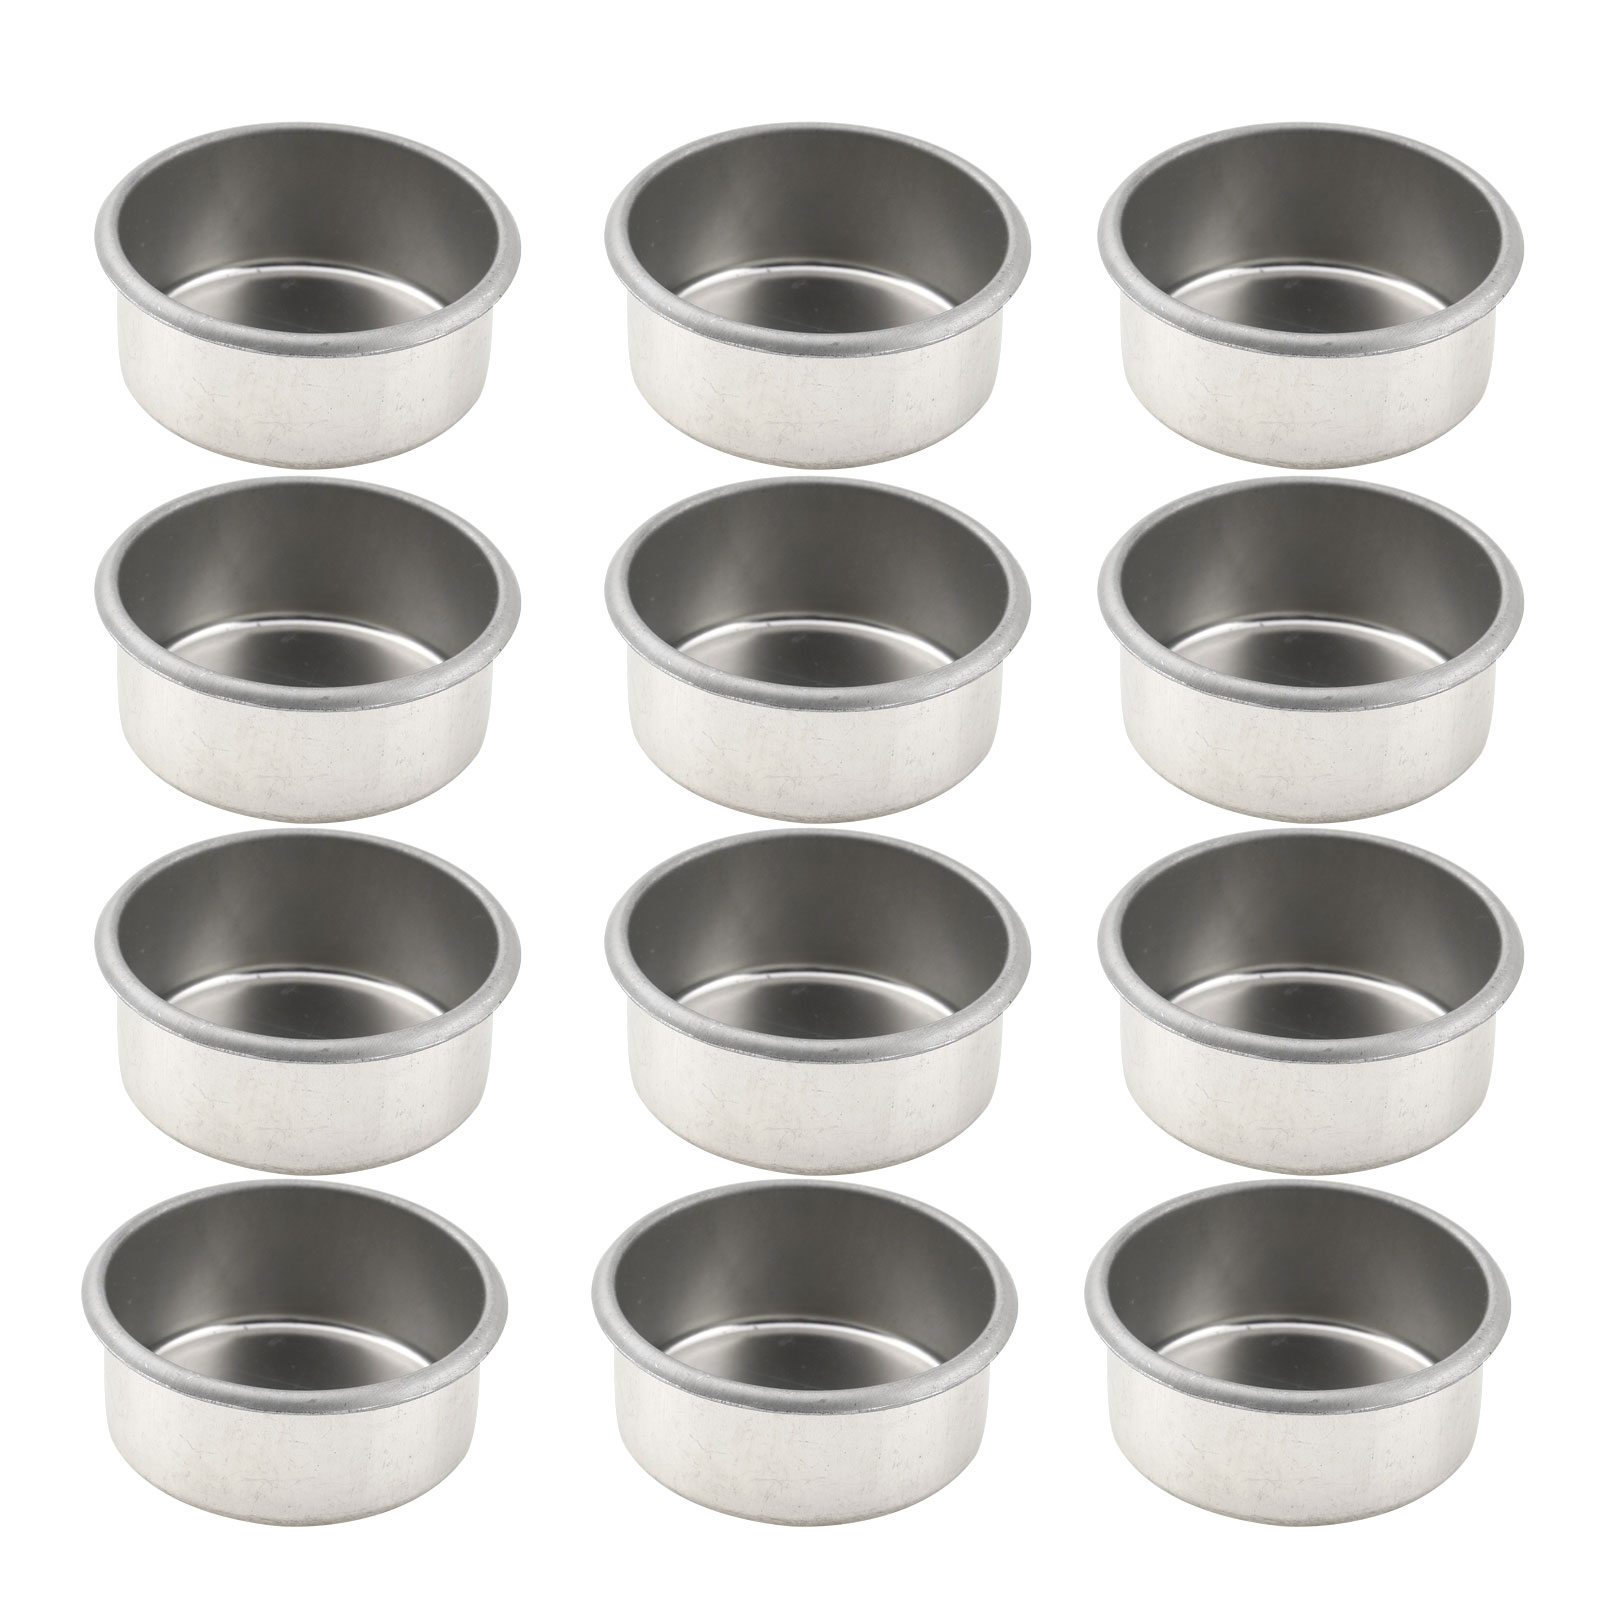 Useful 12 Metal Candle Holder Cups Tea Light Pans Prevent Wax Dripping Candles Containers Diy Candle Making Trays Candlestick Accessory Pleasant In After-Taste